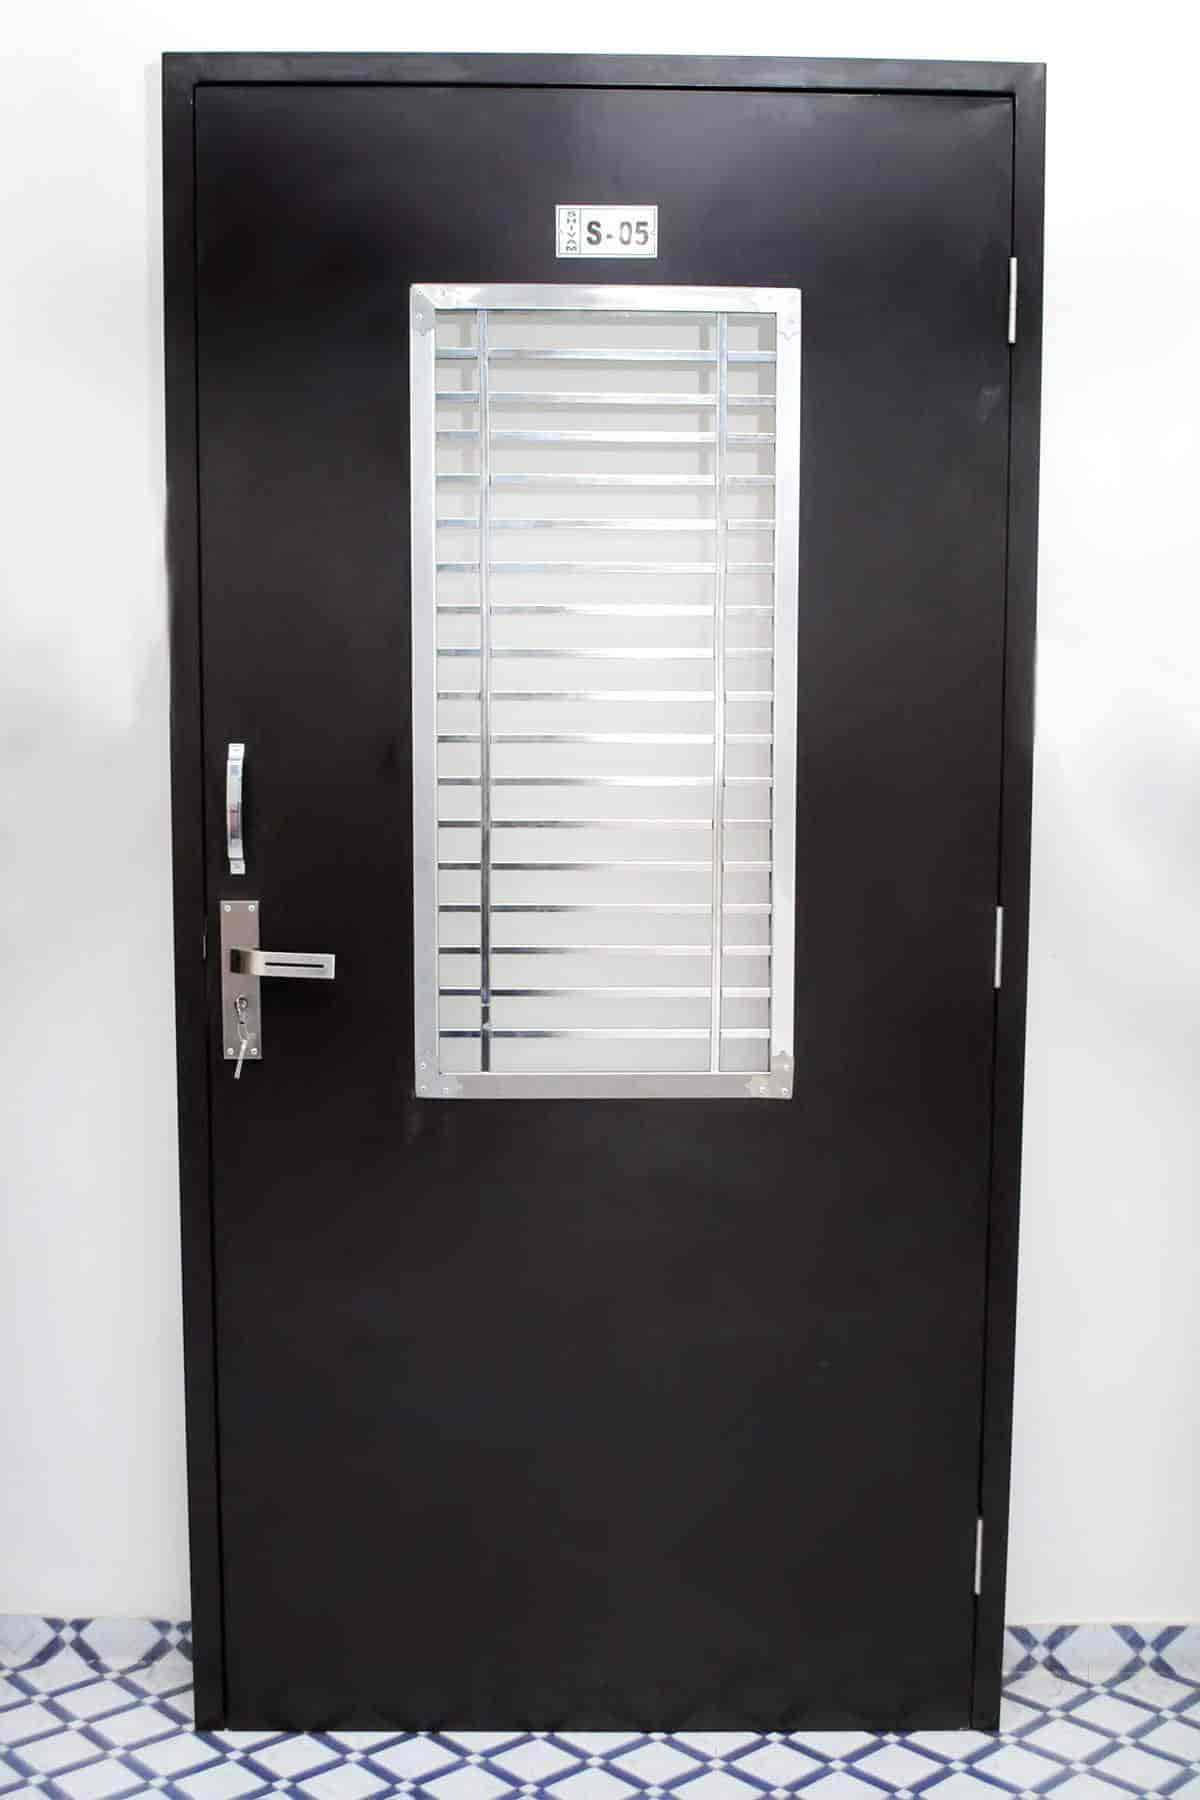 A Tech Doors Narhe Gaon French Door Manufacturers in Pune